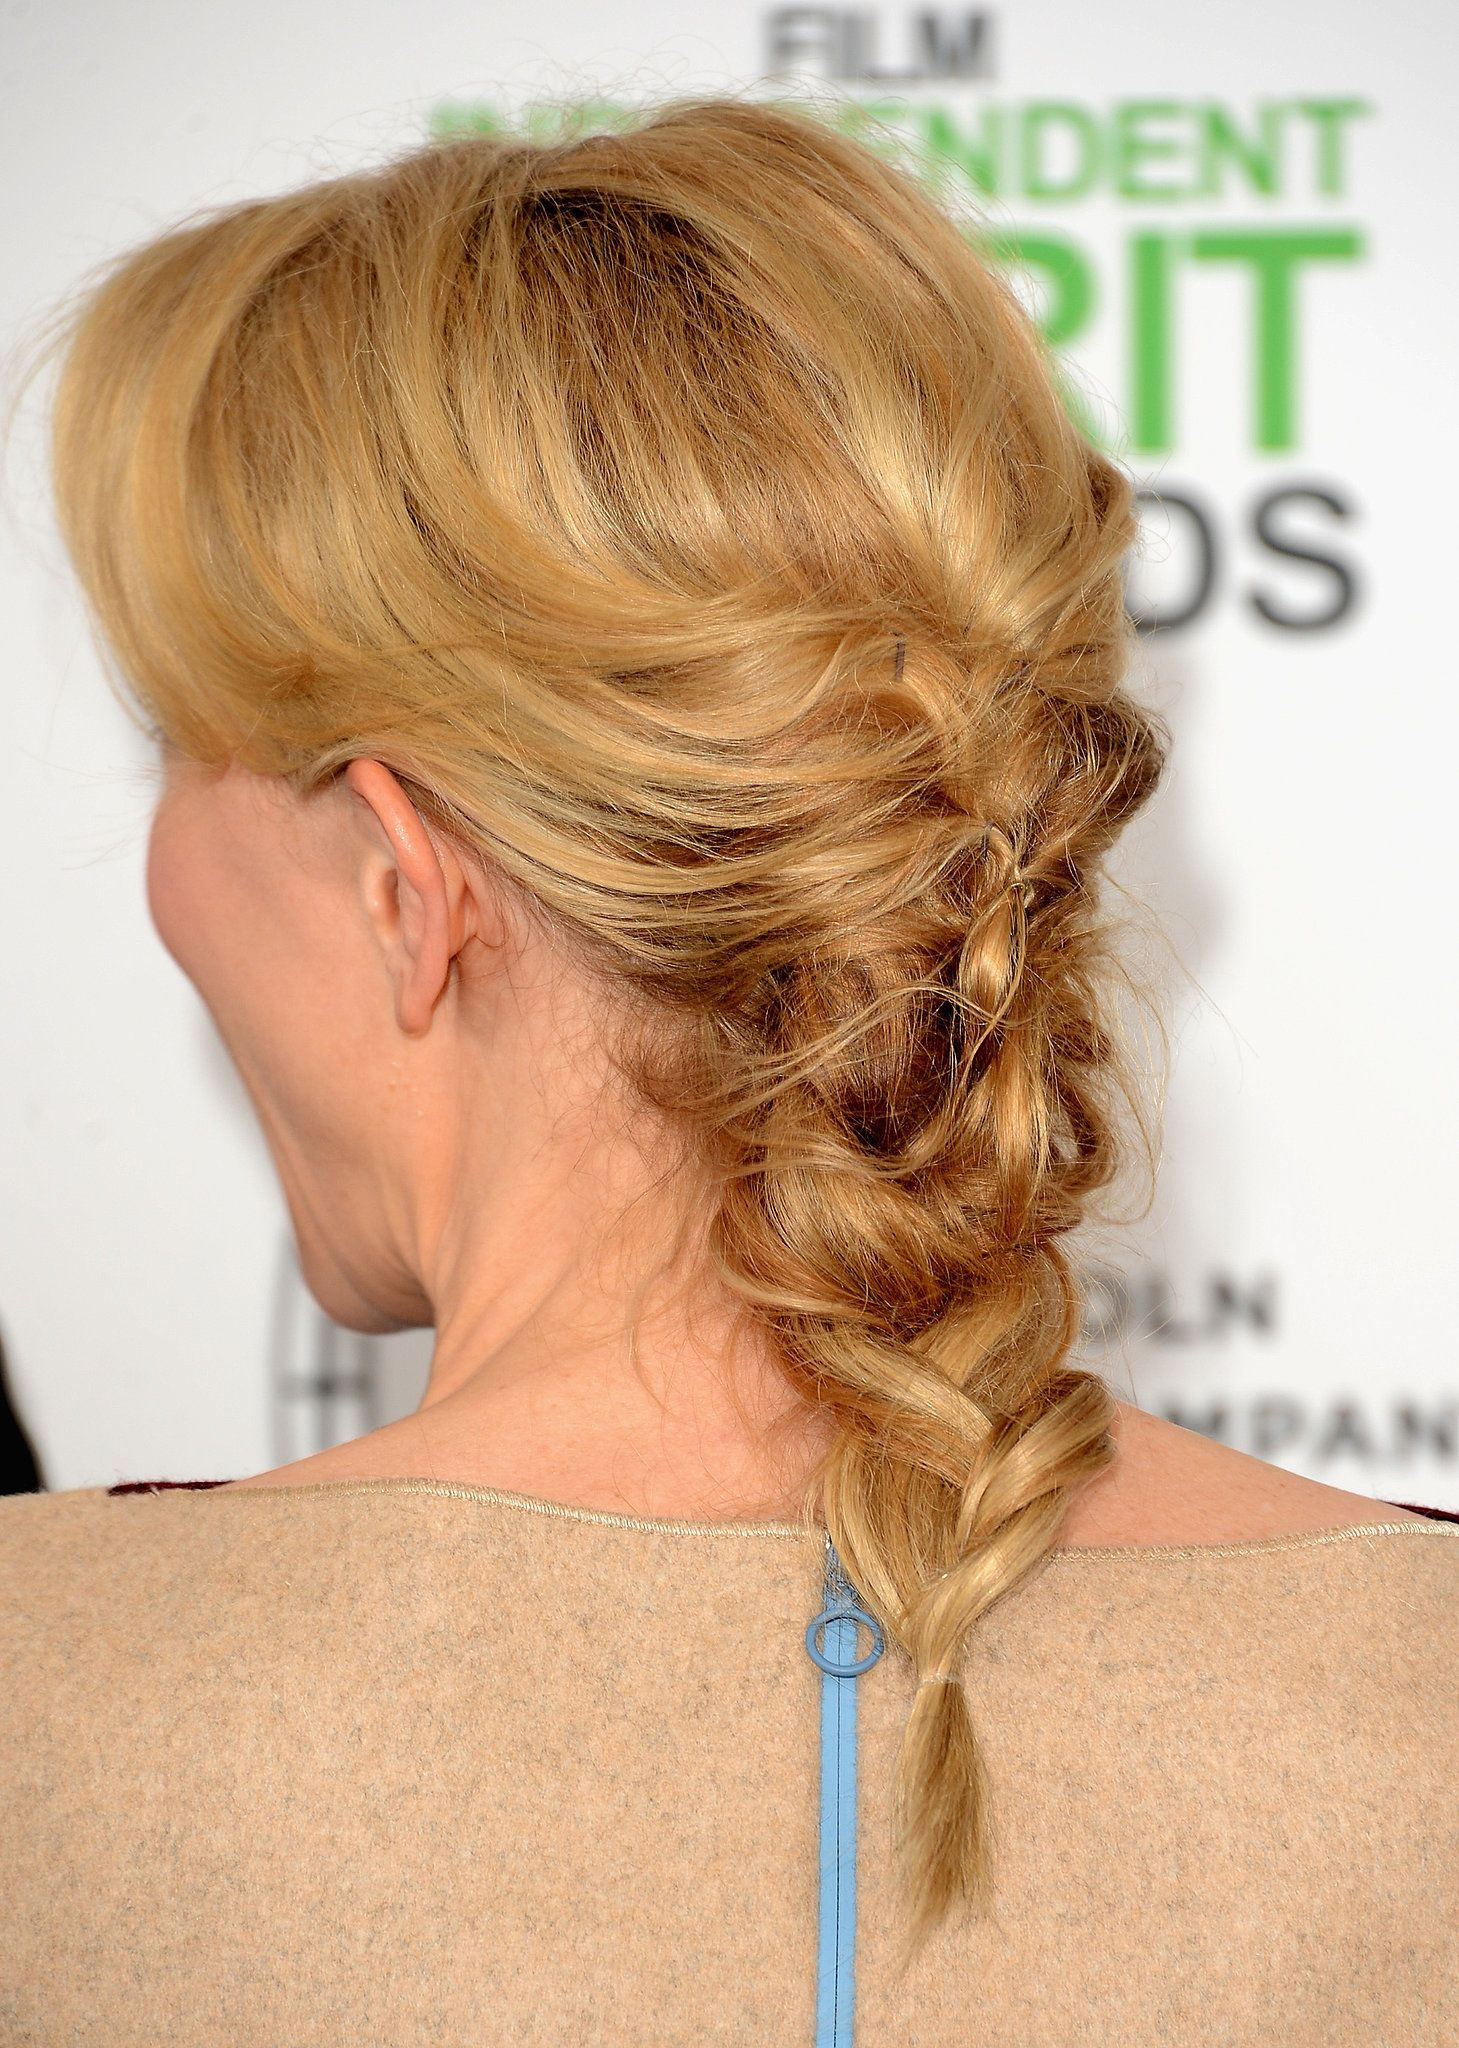 Cate blanchett spirit awards loose french braids and french braid